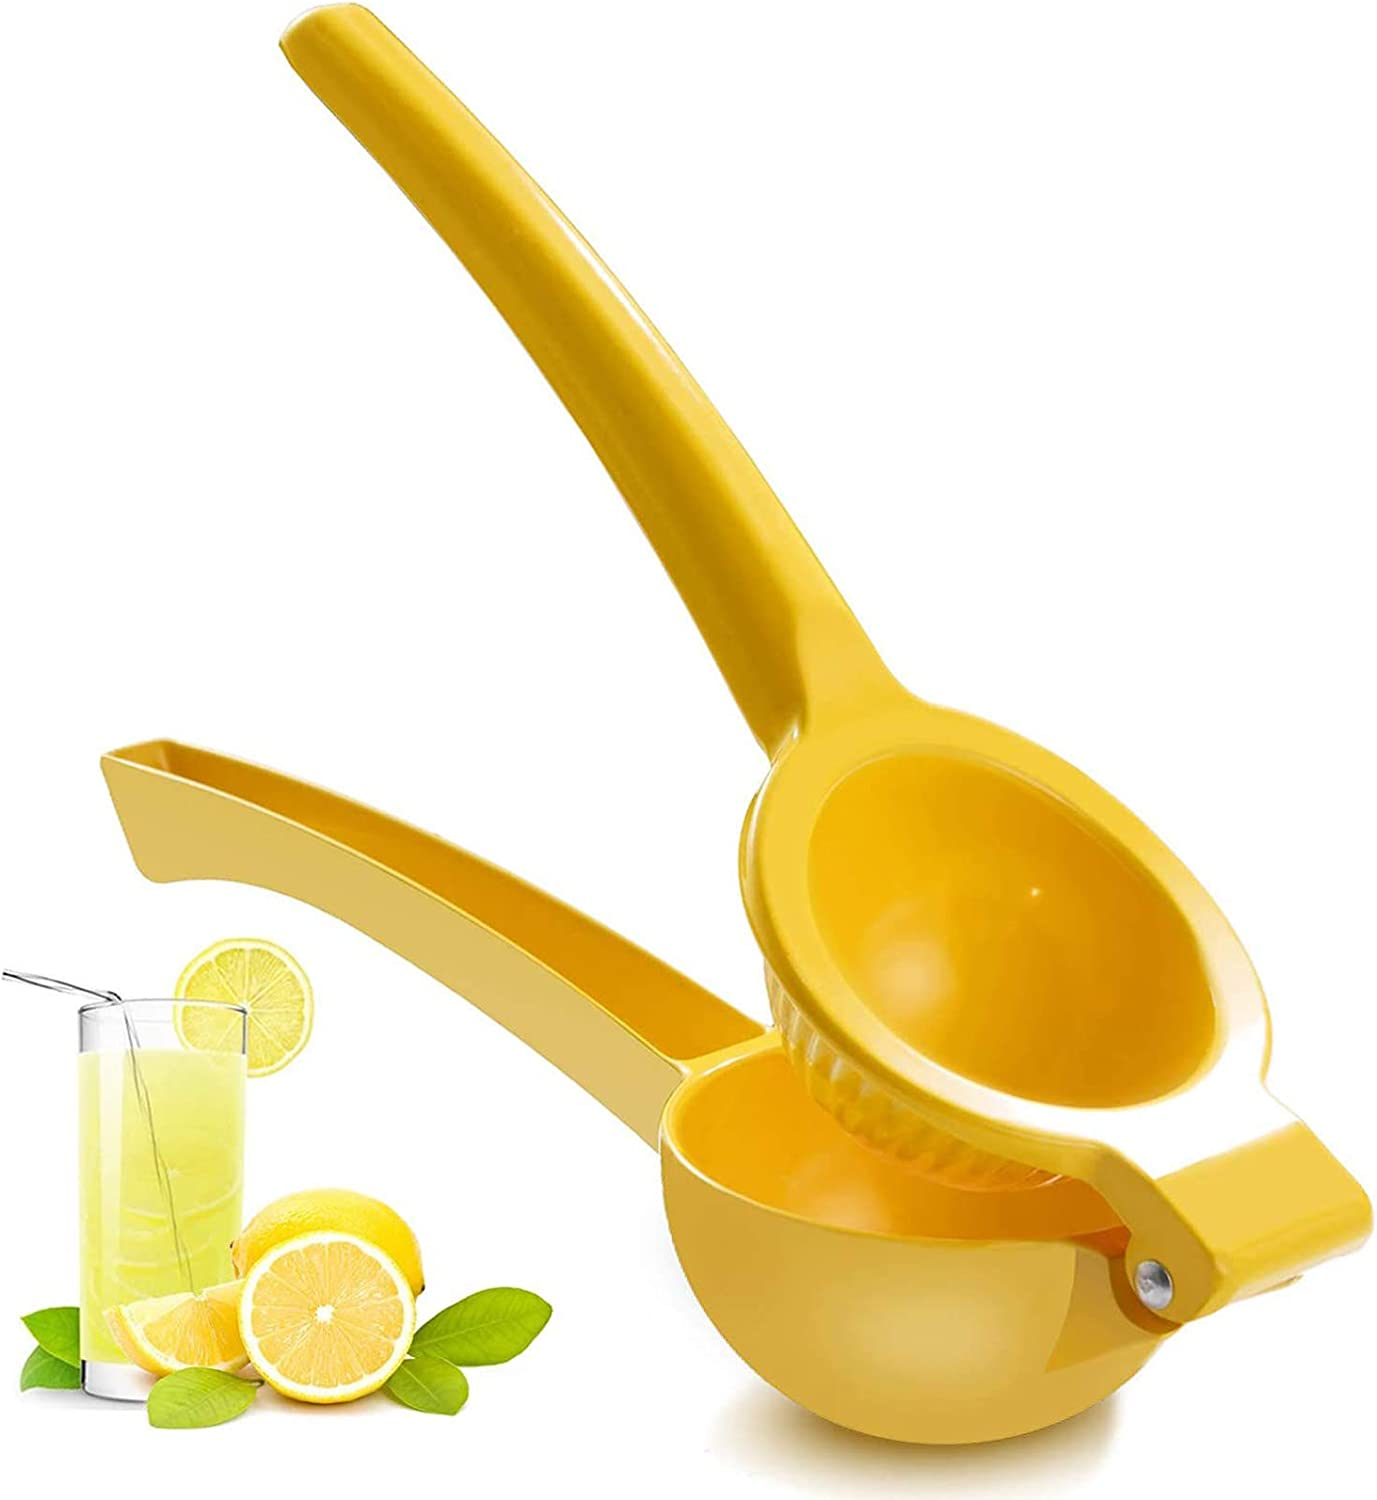 Manual Juicer Citrus Lemon Squeezer,Fruit Juicer Lime Press Metal,Professional Hand Juicer Kitchen Tool(yellow)